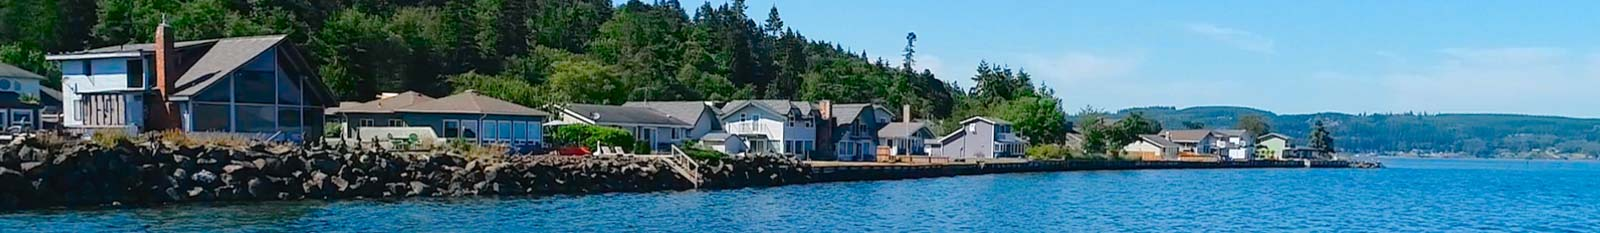 Port Ludlow Waterfront Market Statistics